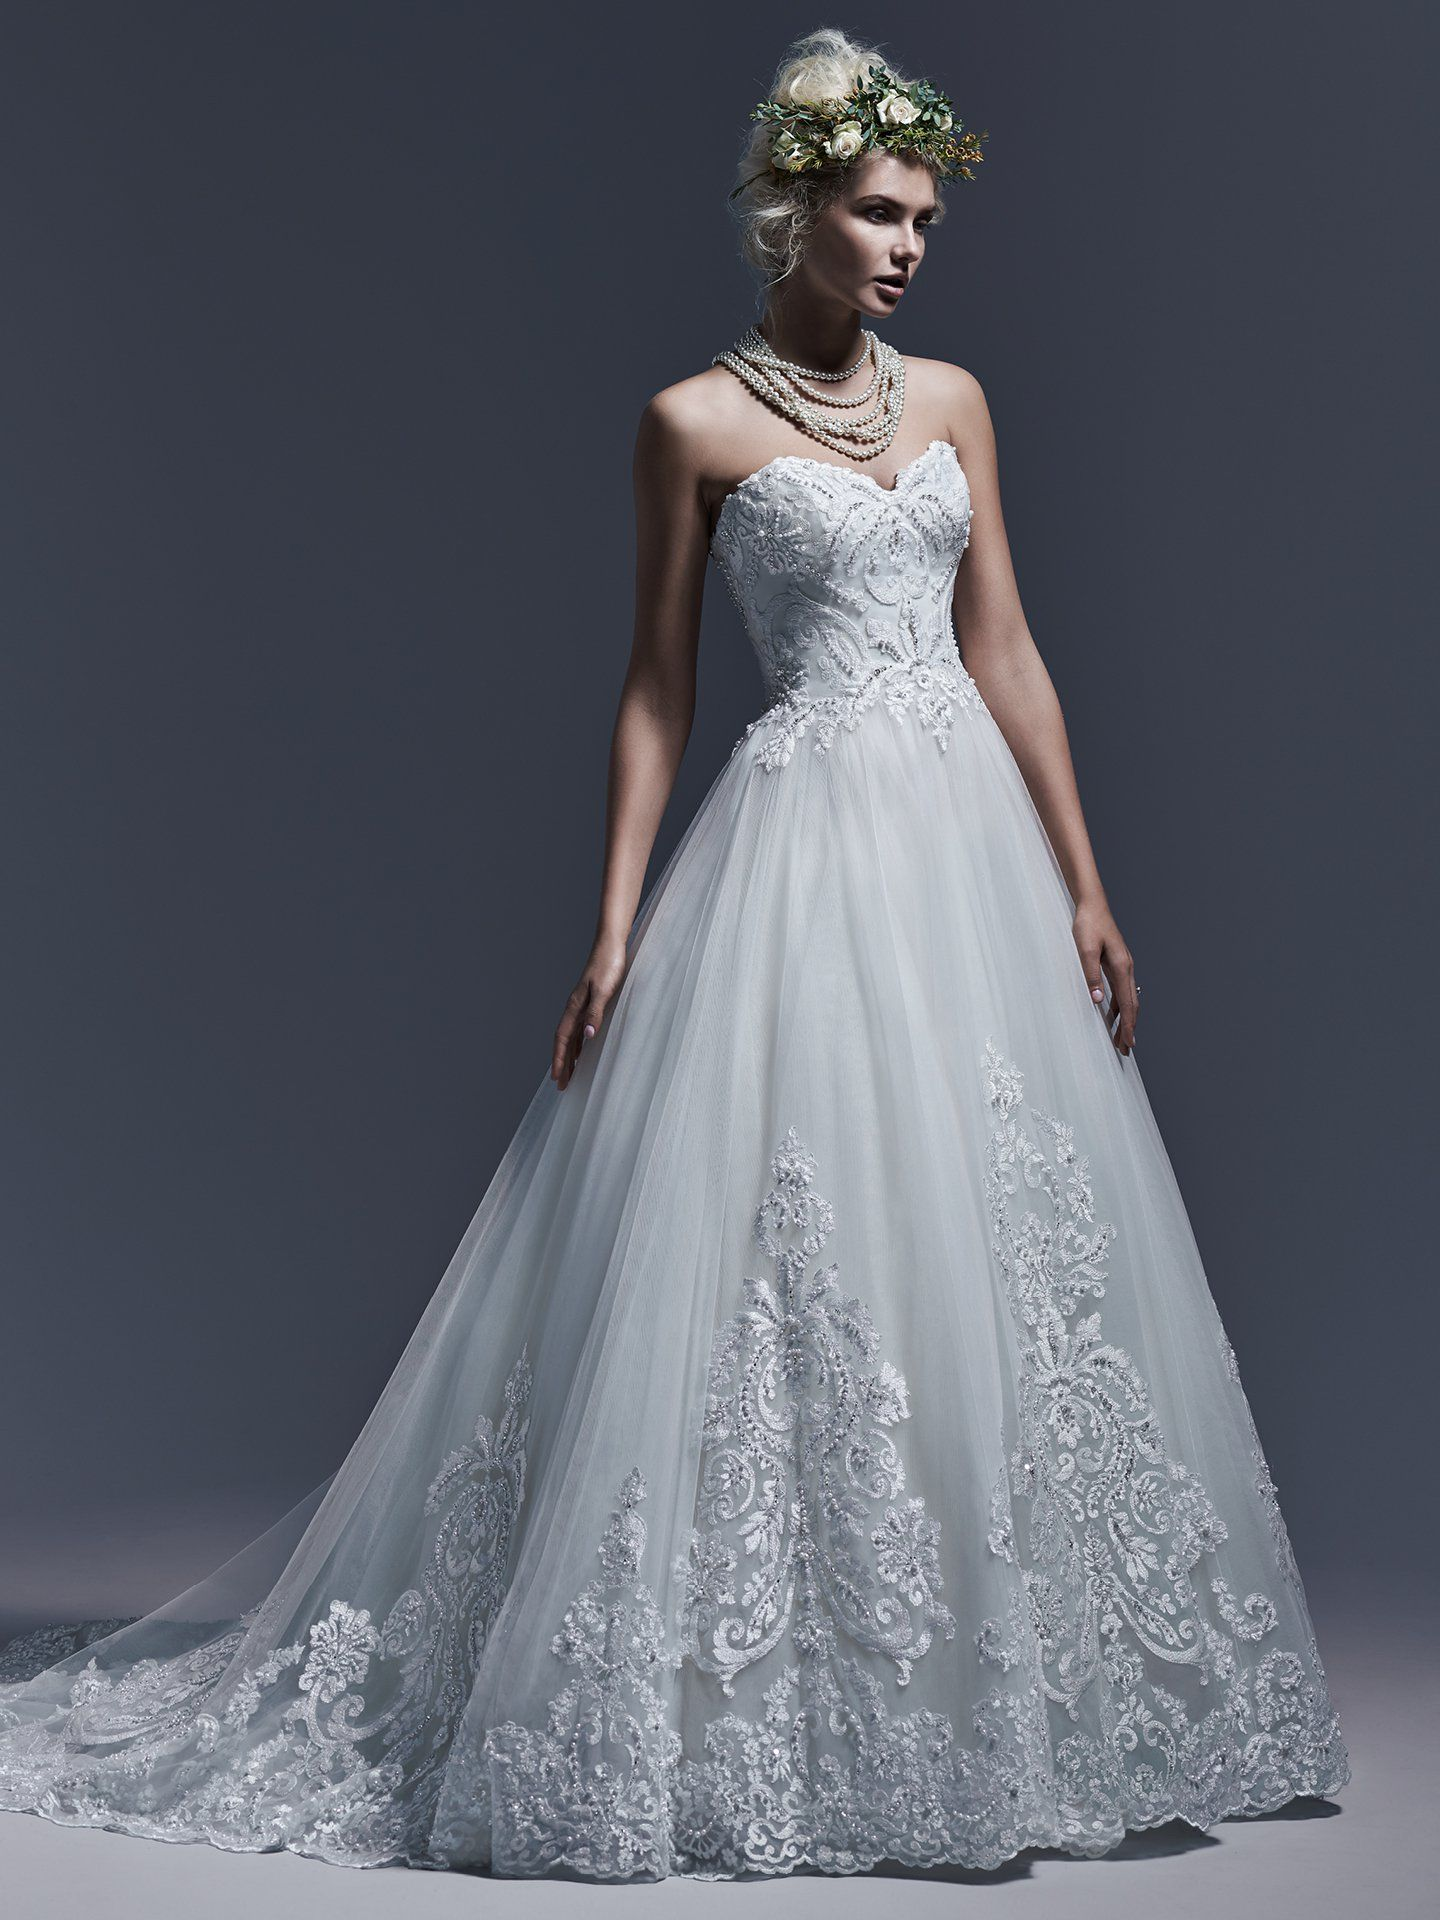 Attractive Lavish Wedding Gowns Image Collection - All Wedding ...